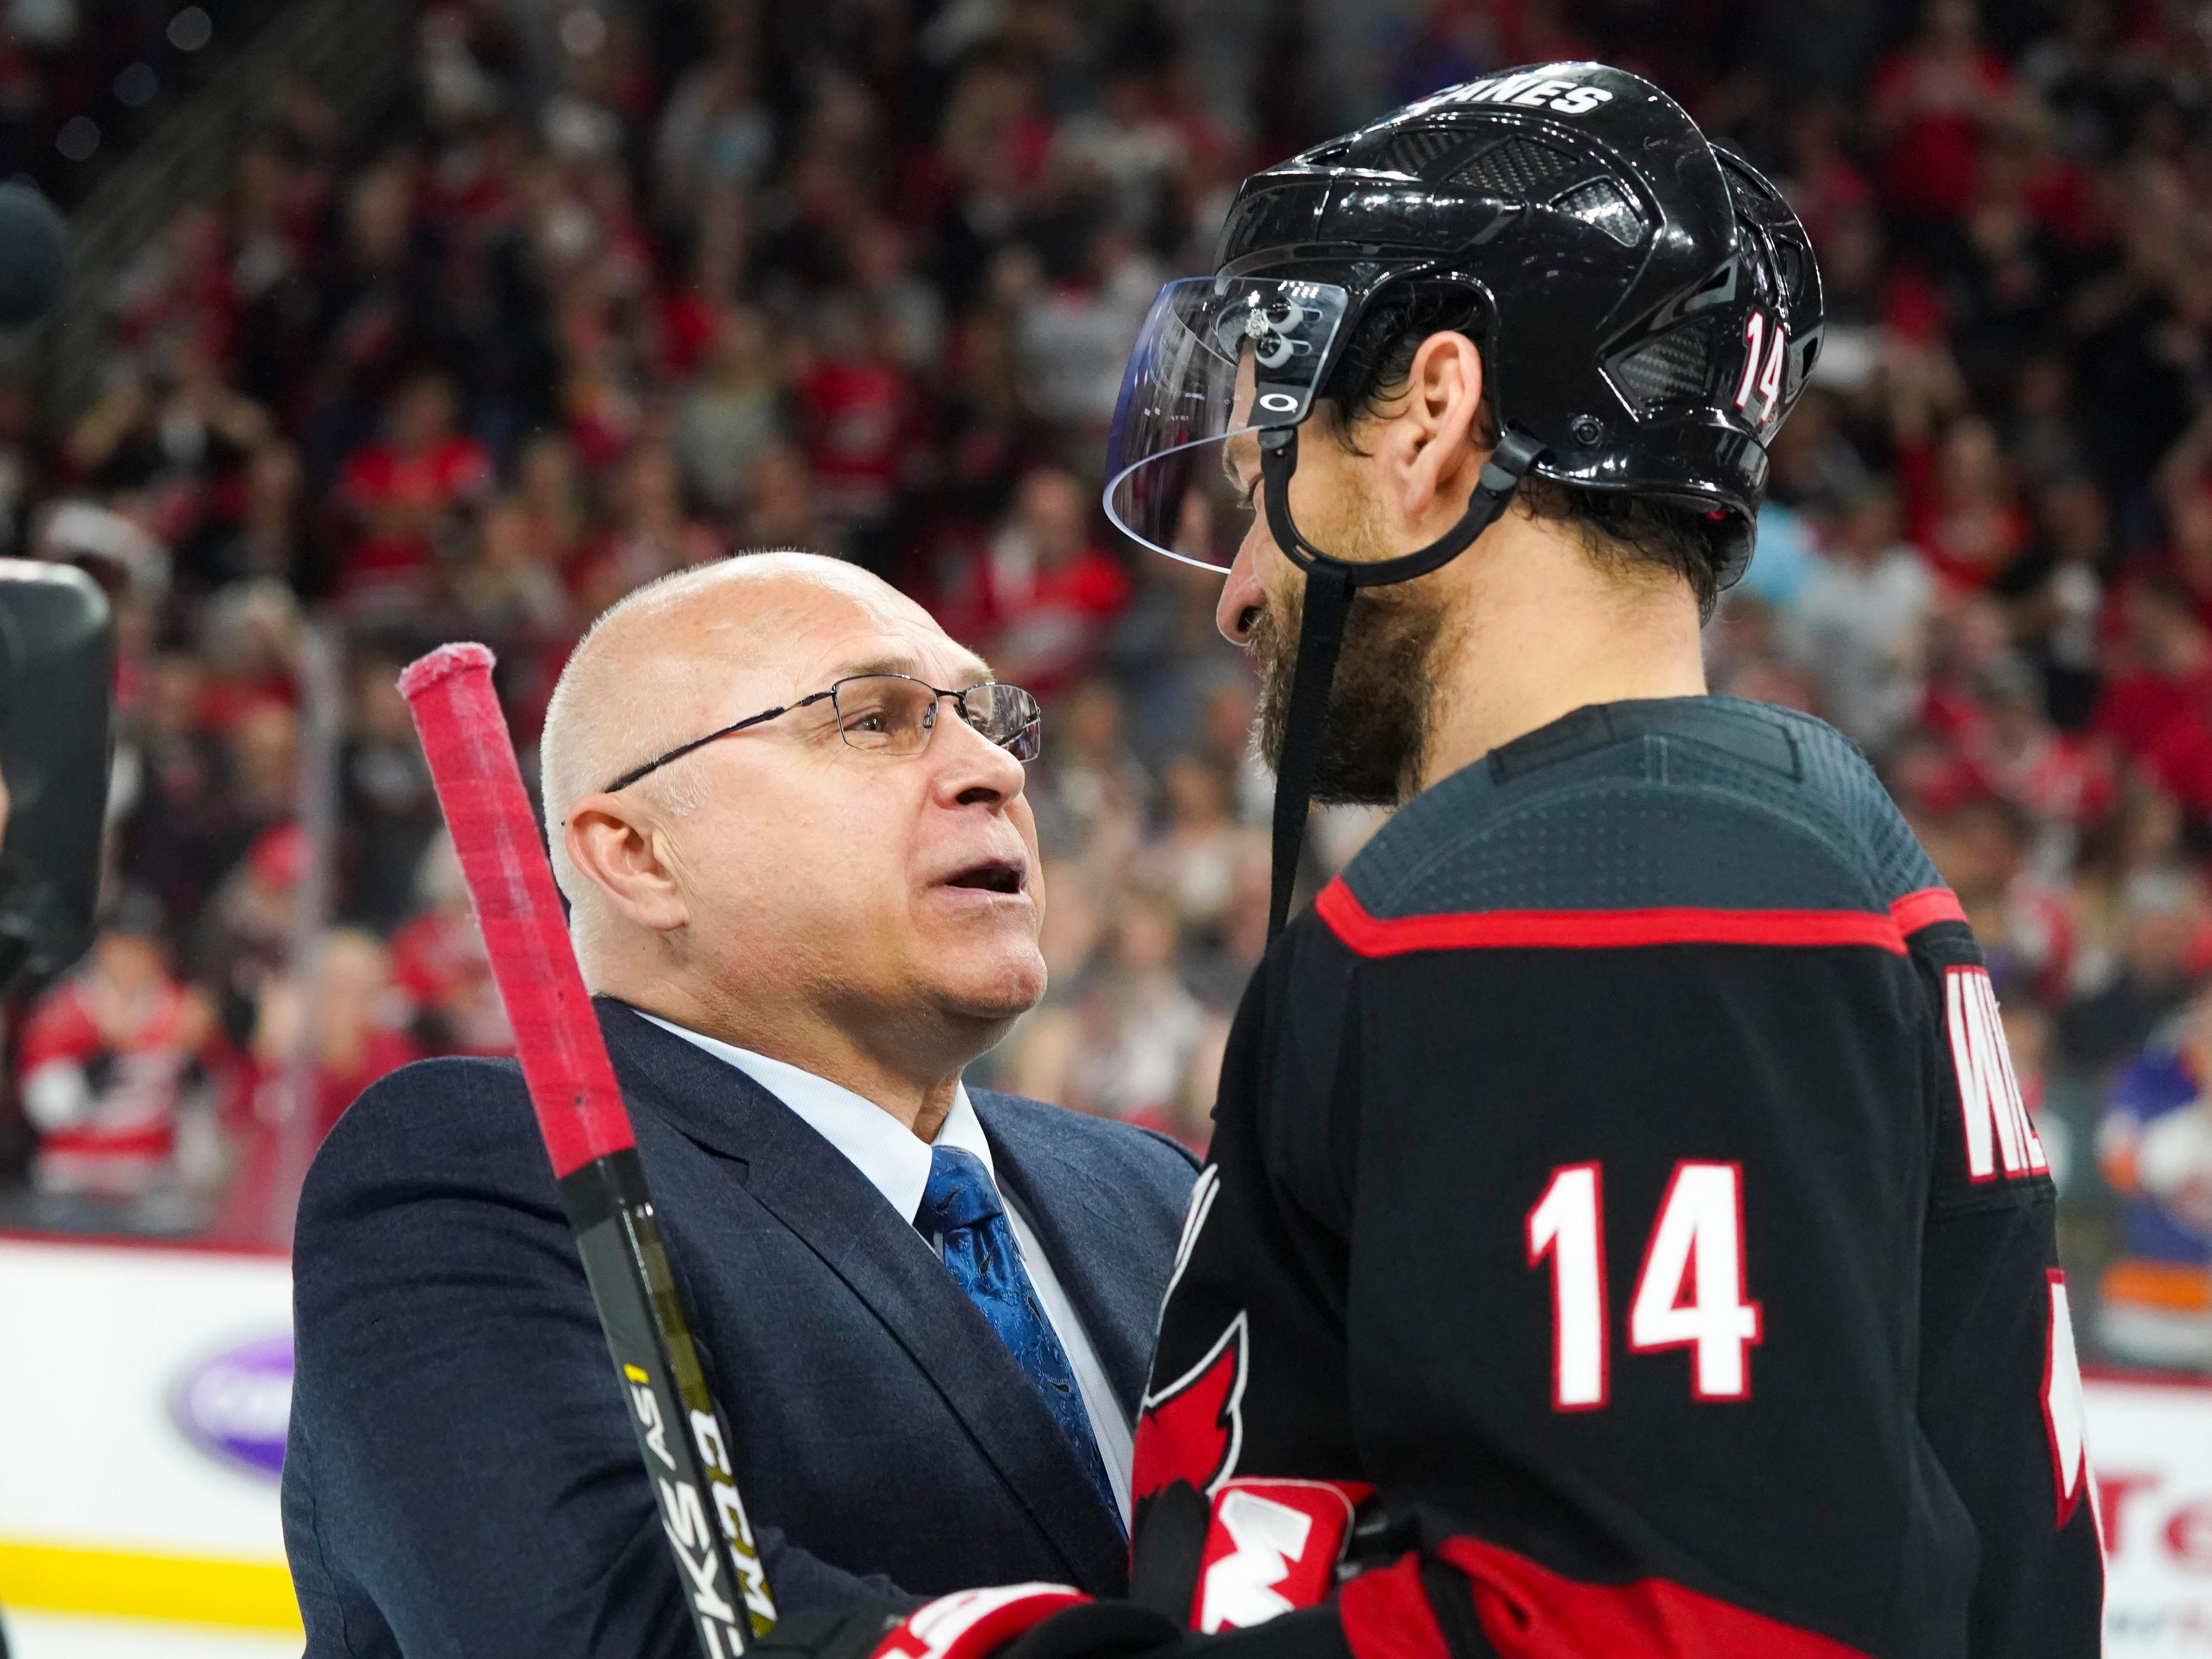 Second round: Islanders coach Barry Trotz and Hurricanes captain Justin Williams after Carolina advanced with a sweep. The two were together with the Capitals.